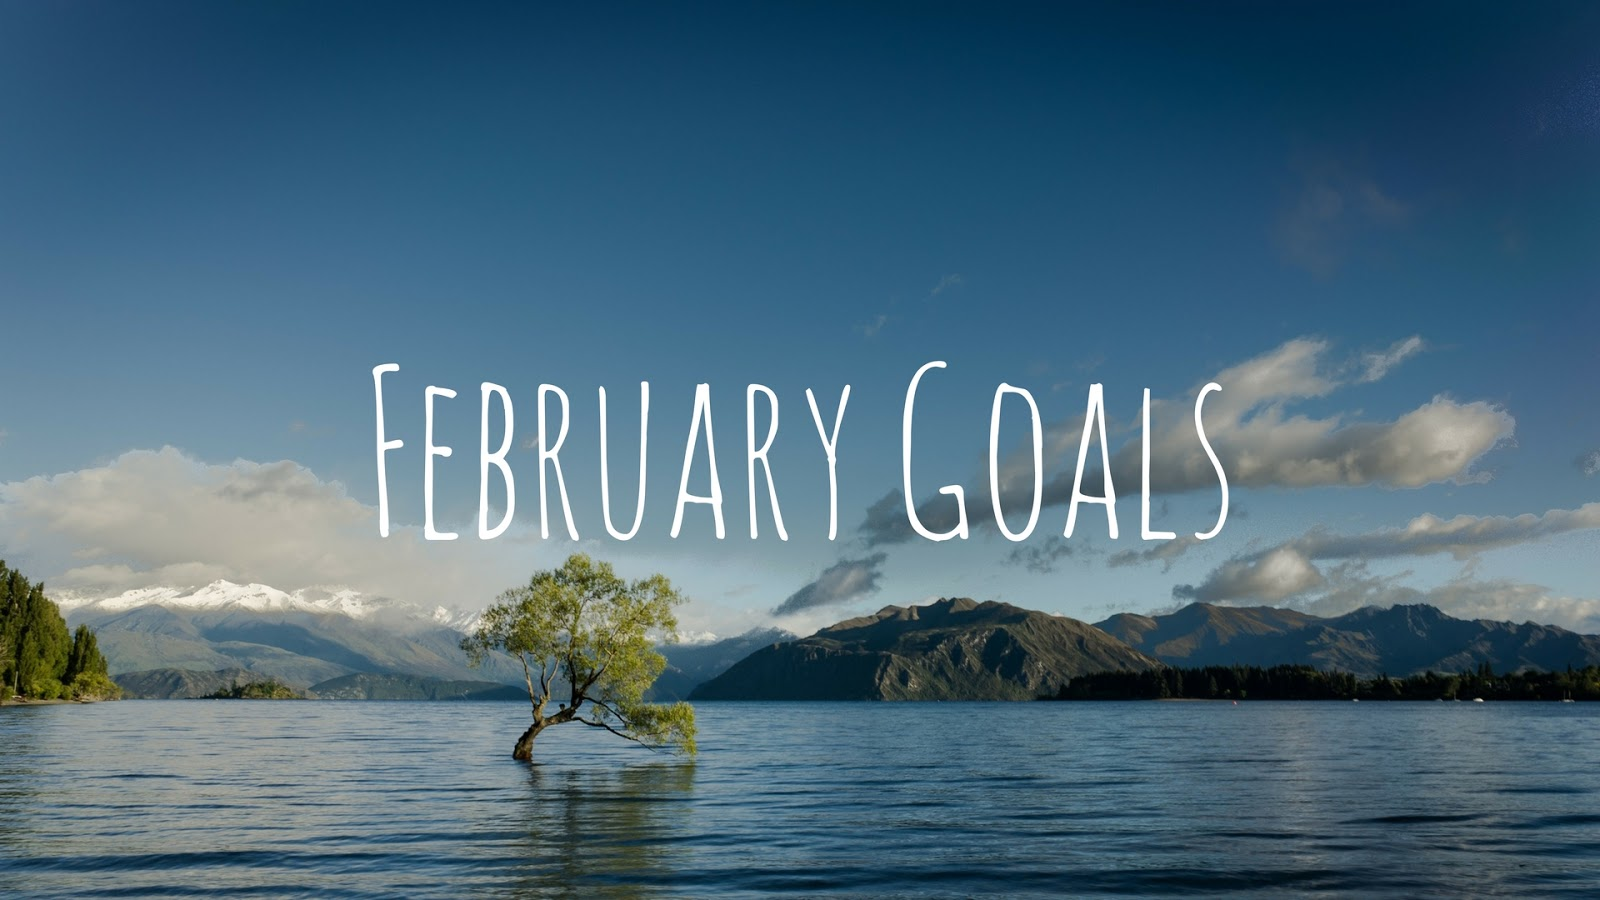 goals, holiday, fitness, travel, february, january, yearly, lists, blogging, lifestyle